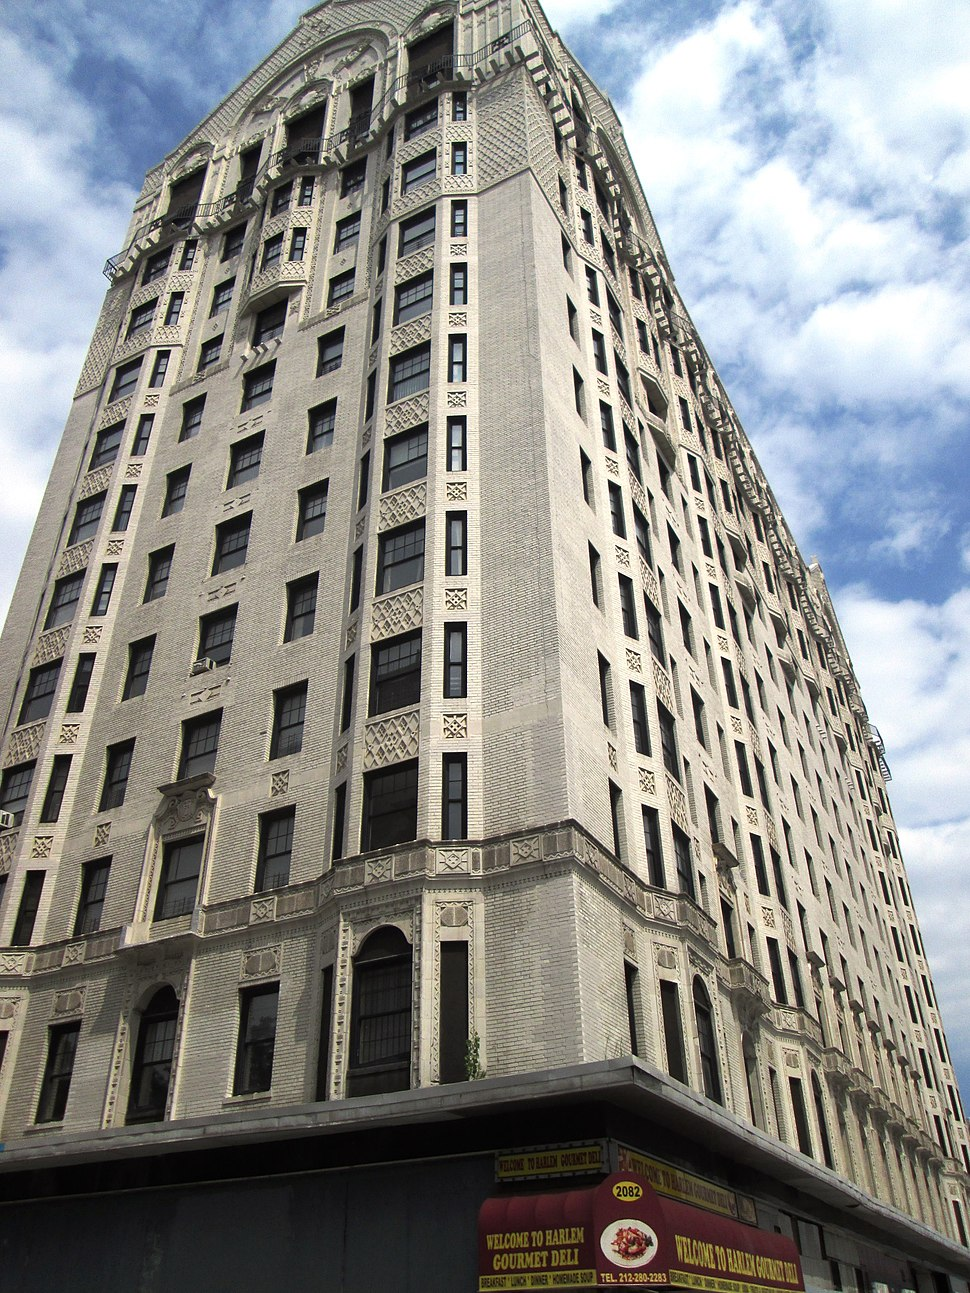 Hotel Theresa from below